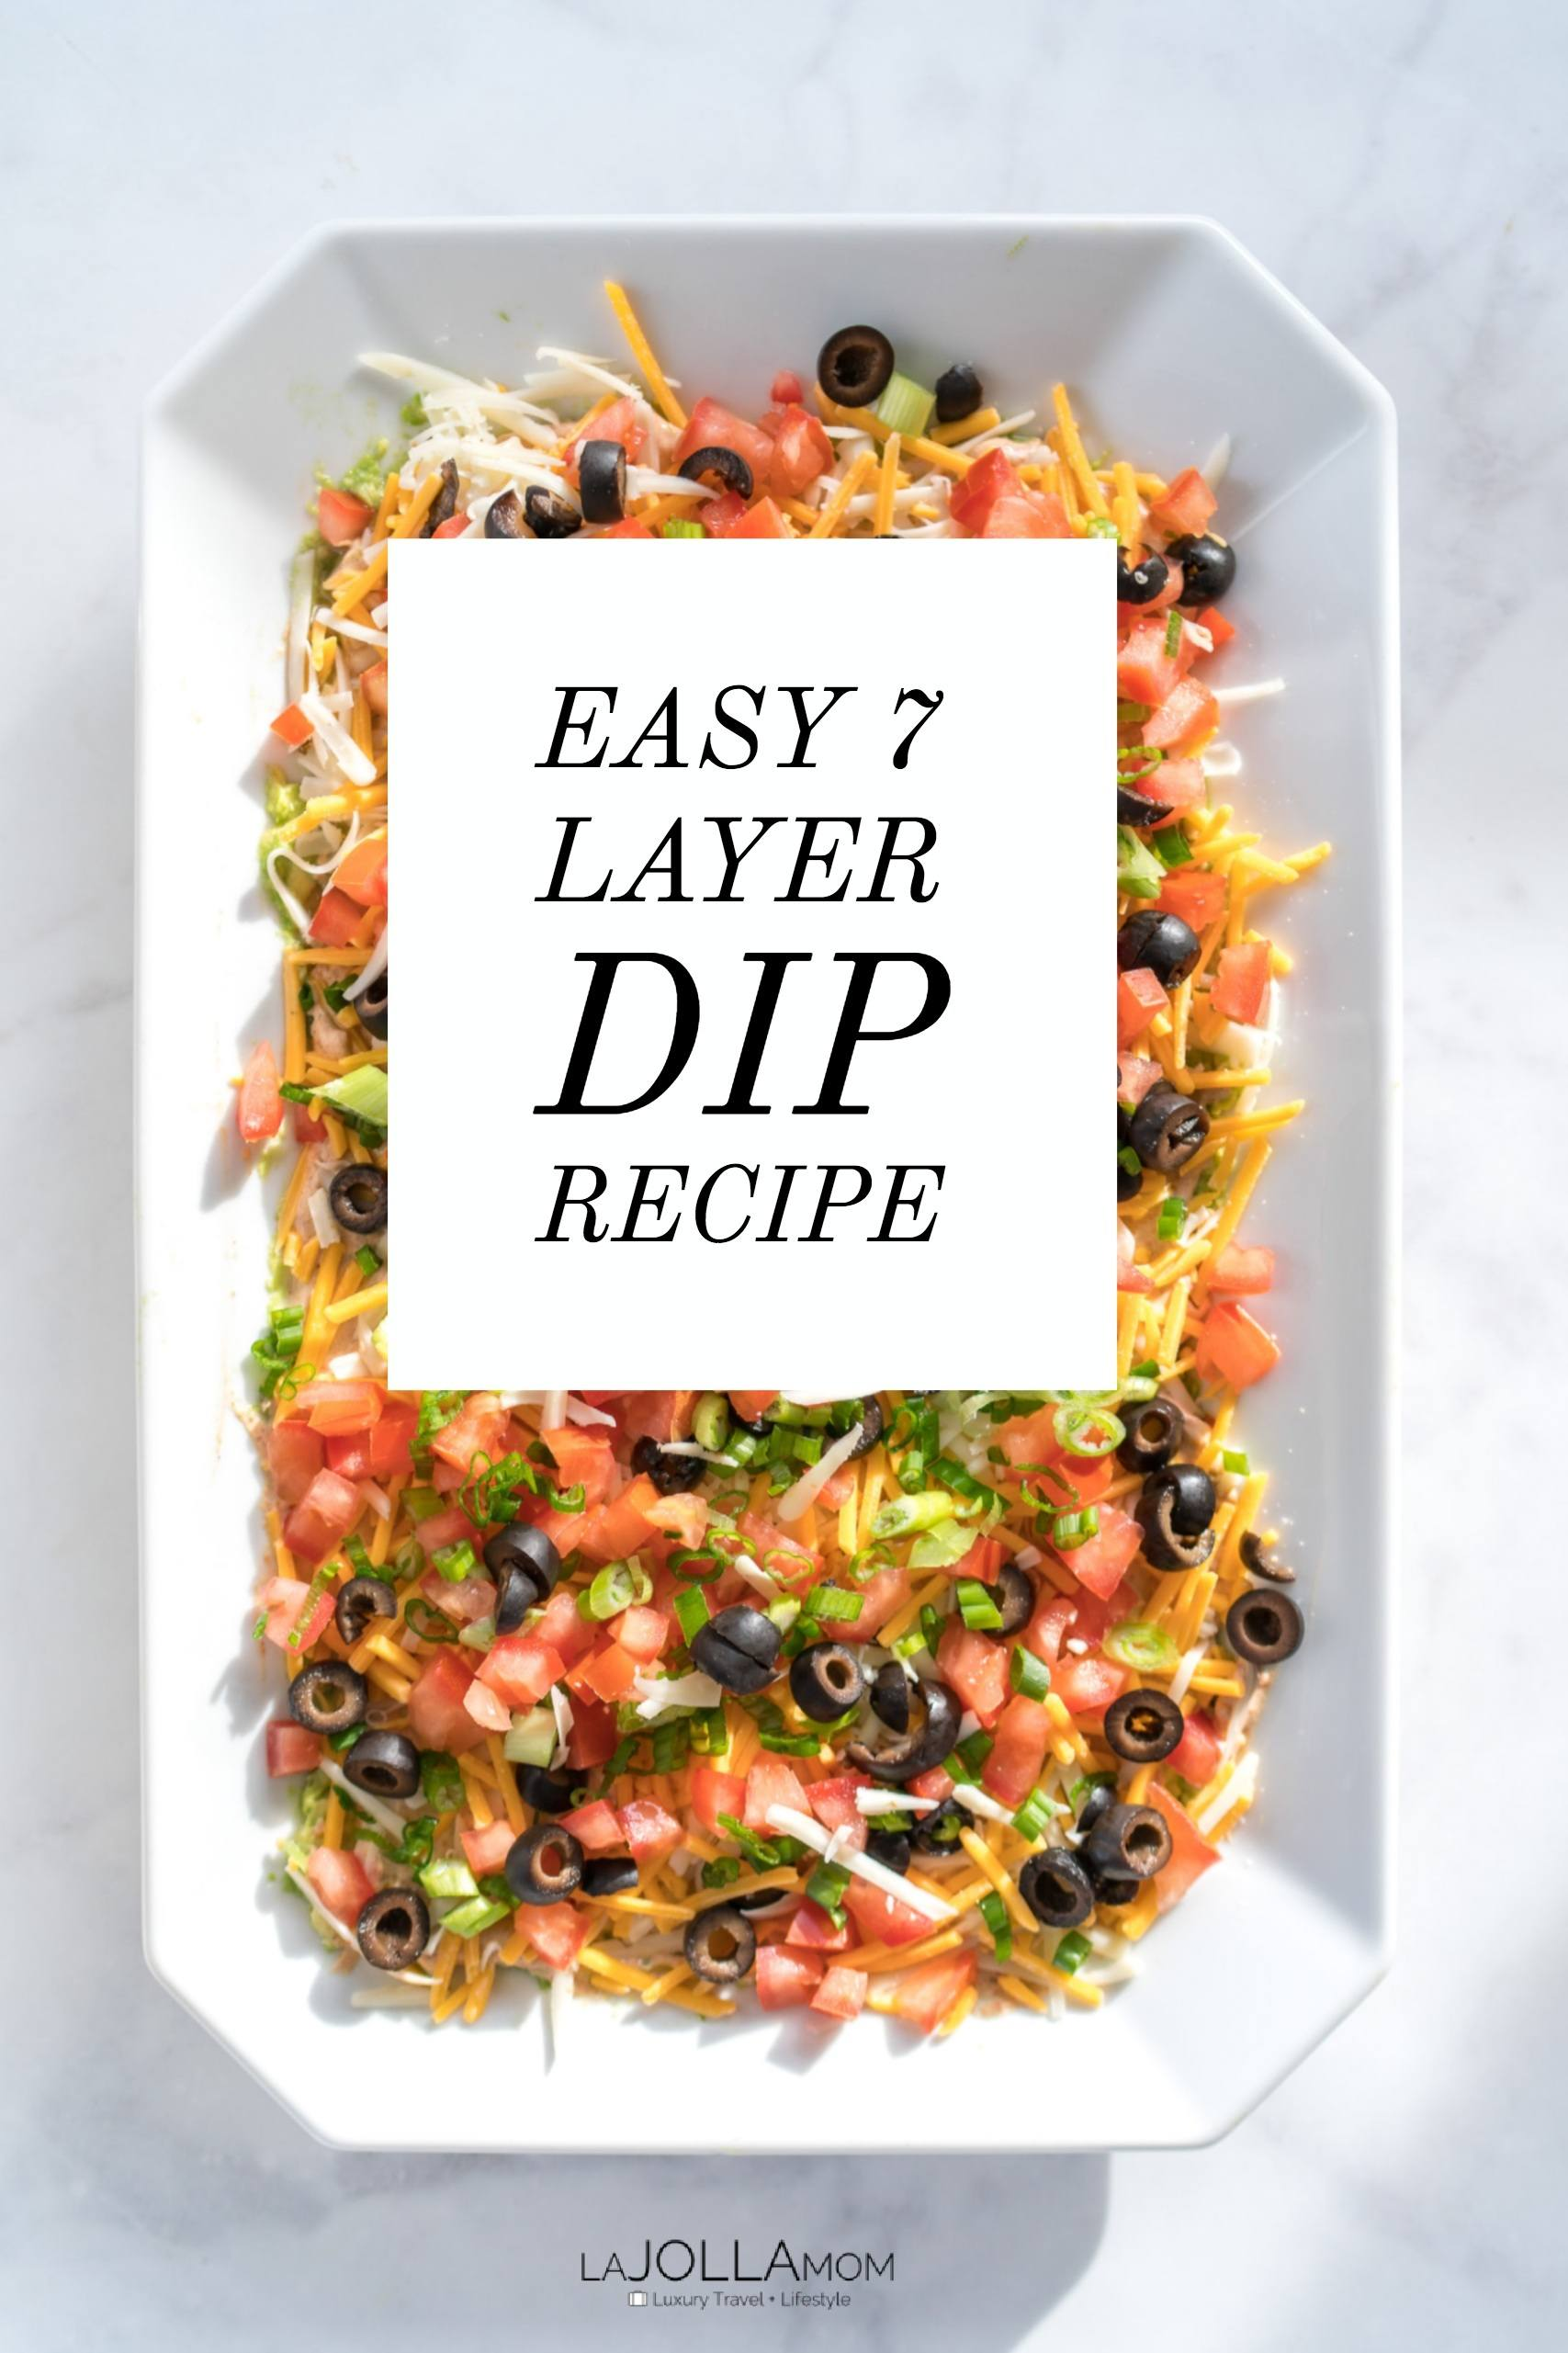 35 easy dinner recipes that require only one dish such as casserole recipes, stir fry recipes, lasagna recipes, stew recipes and more.